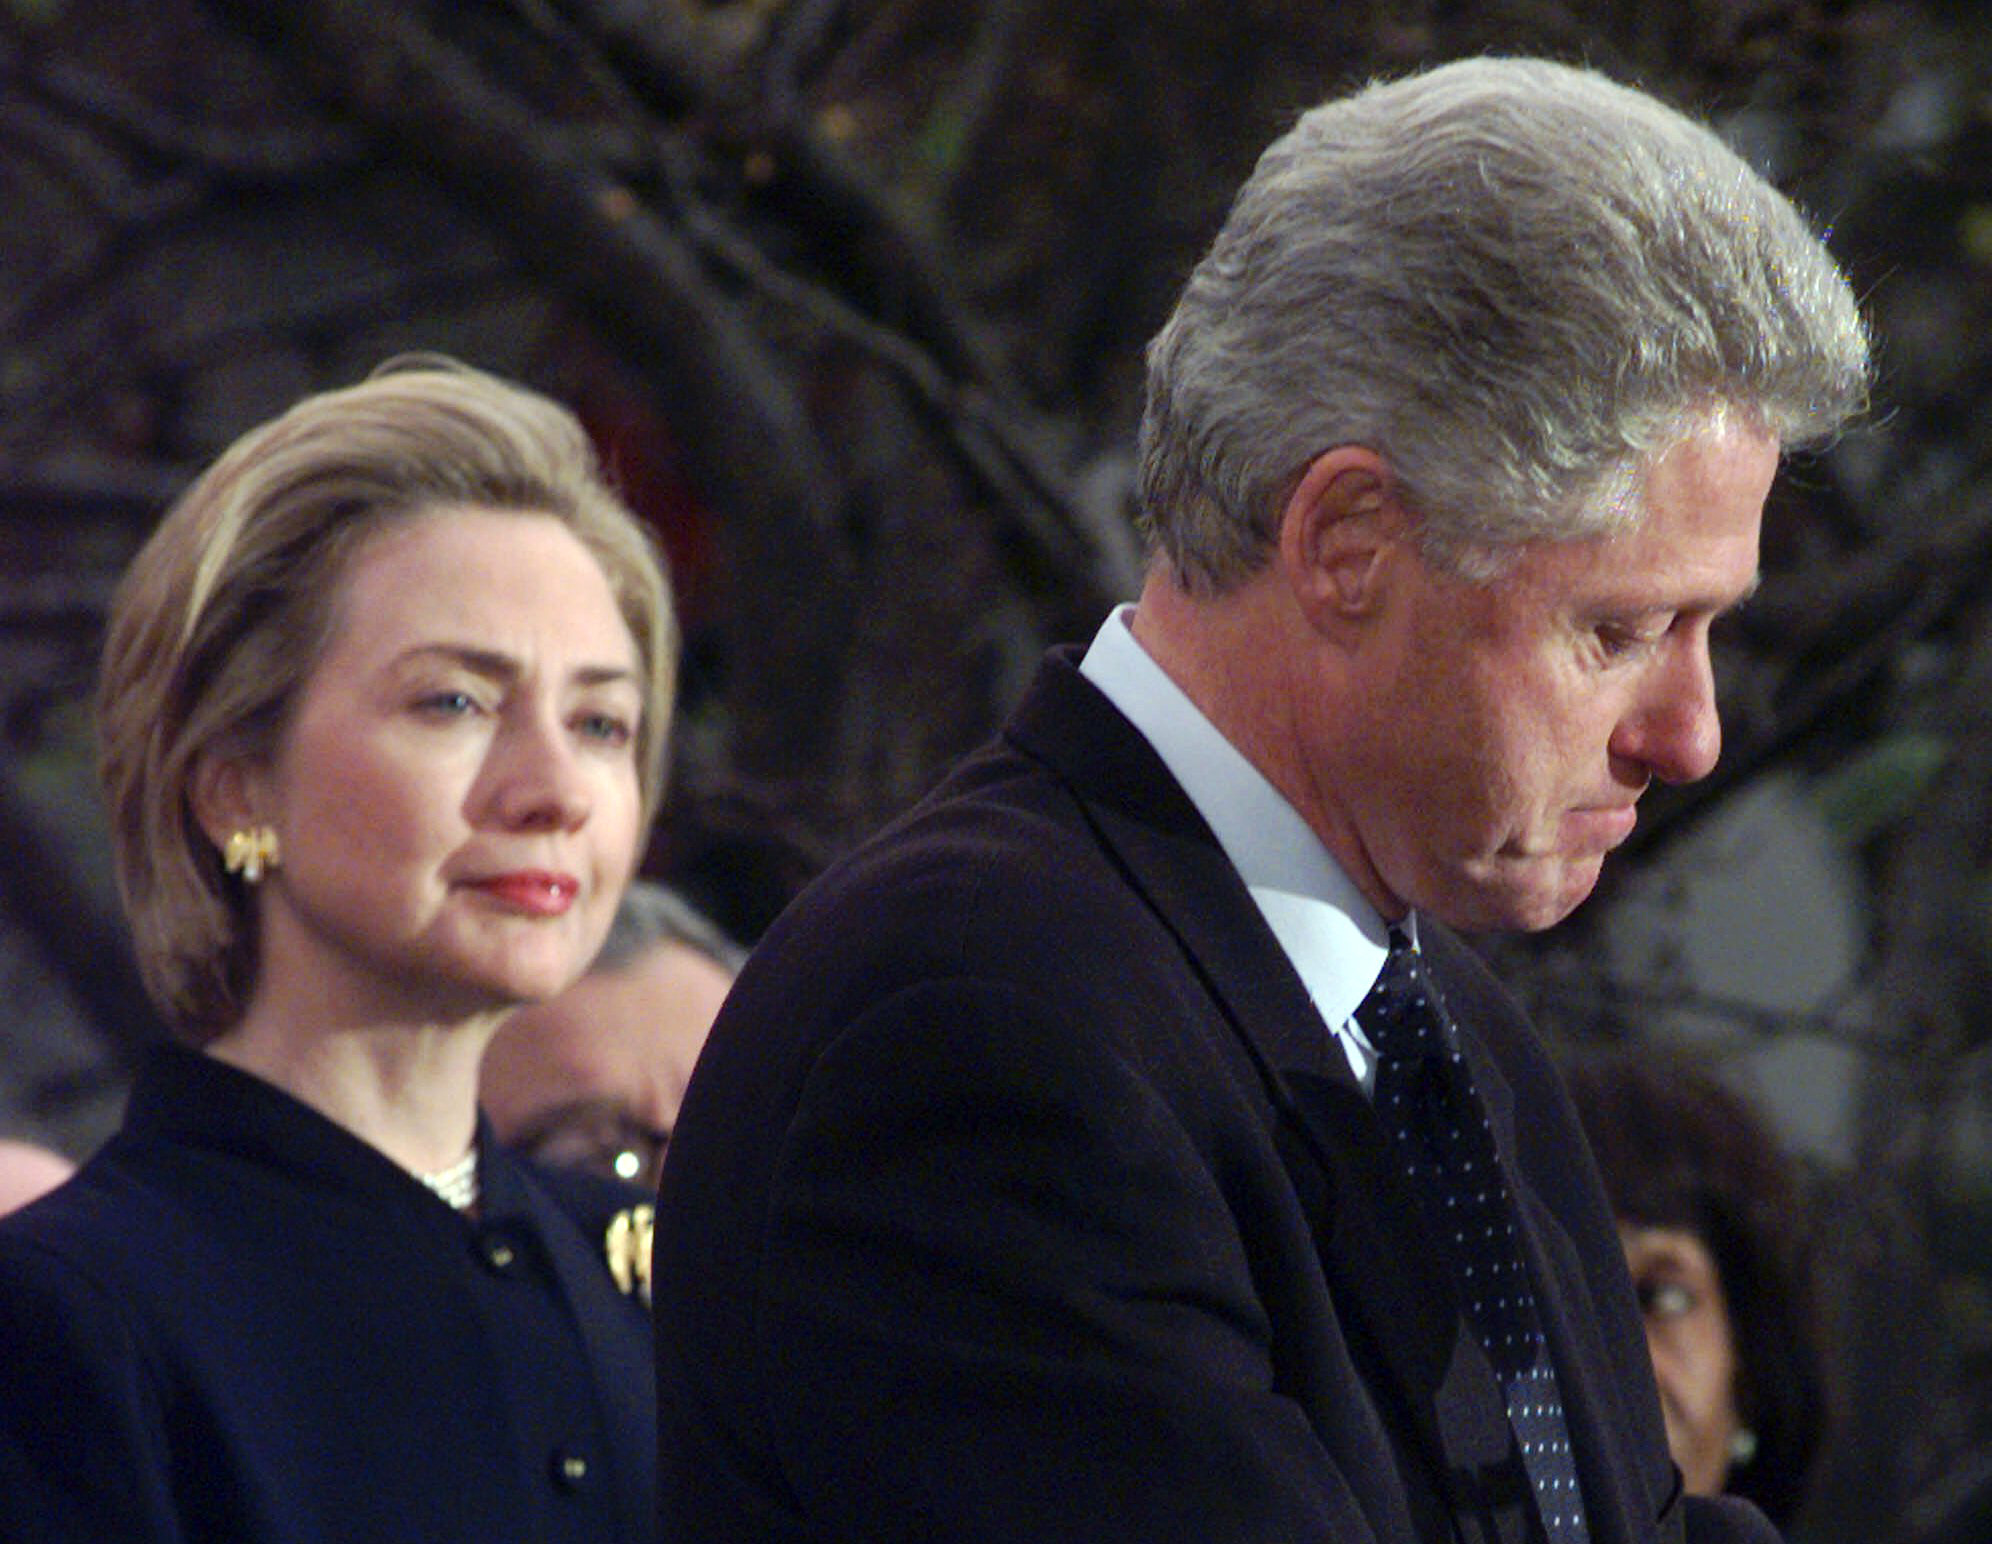 First Lady Hillary Rodham Clinton watches President Bill Clinton as he thanks Democratic members of the House of Representatives who voted against impeachment on Dec. 19, 1998, following the Lewinsky scandal.